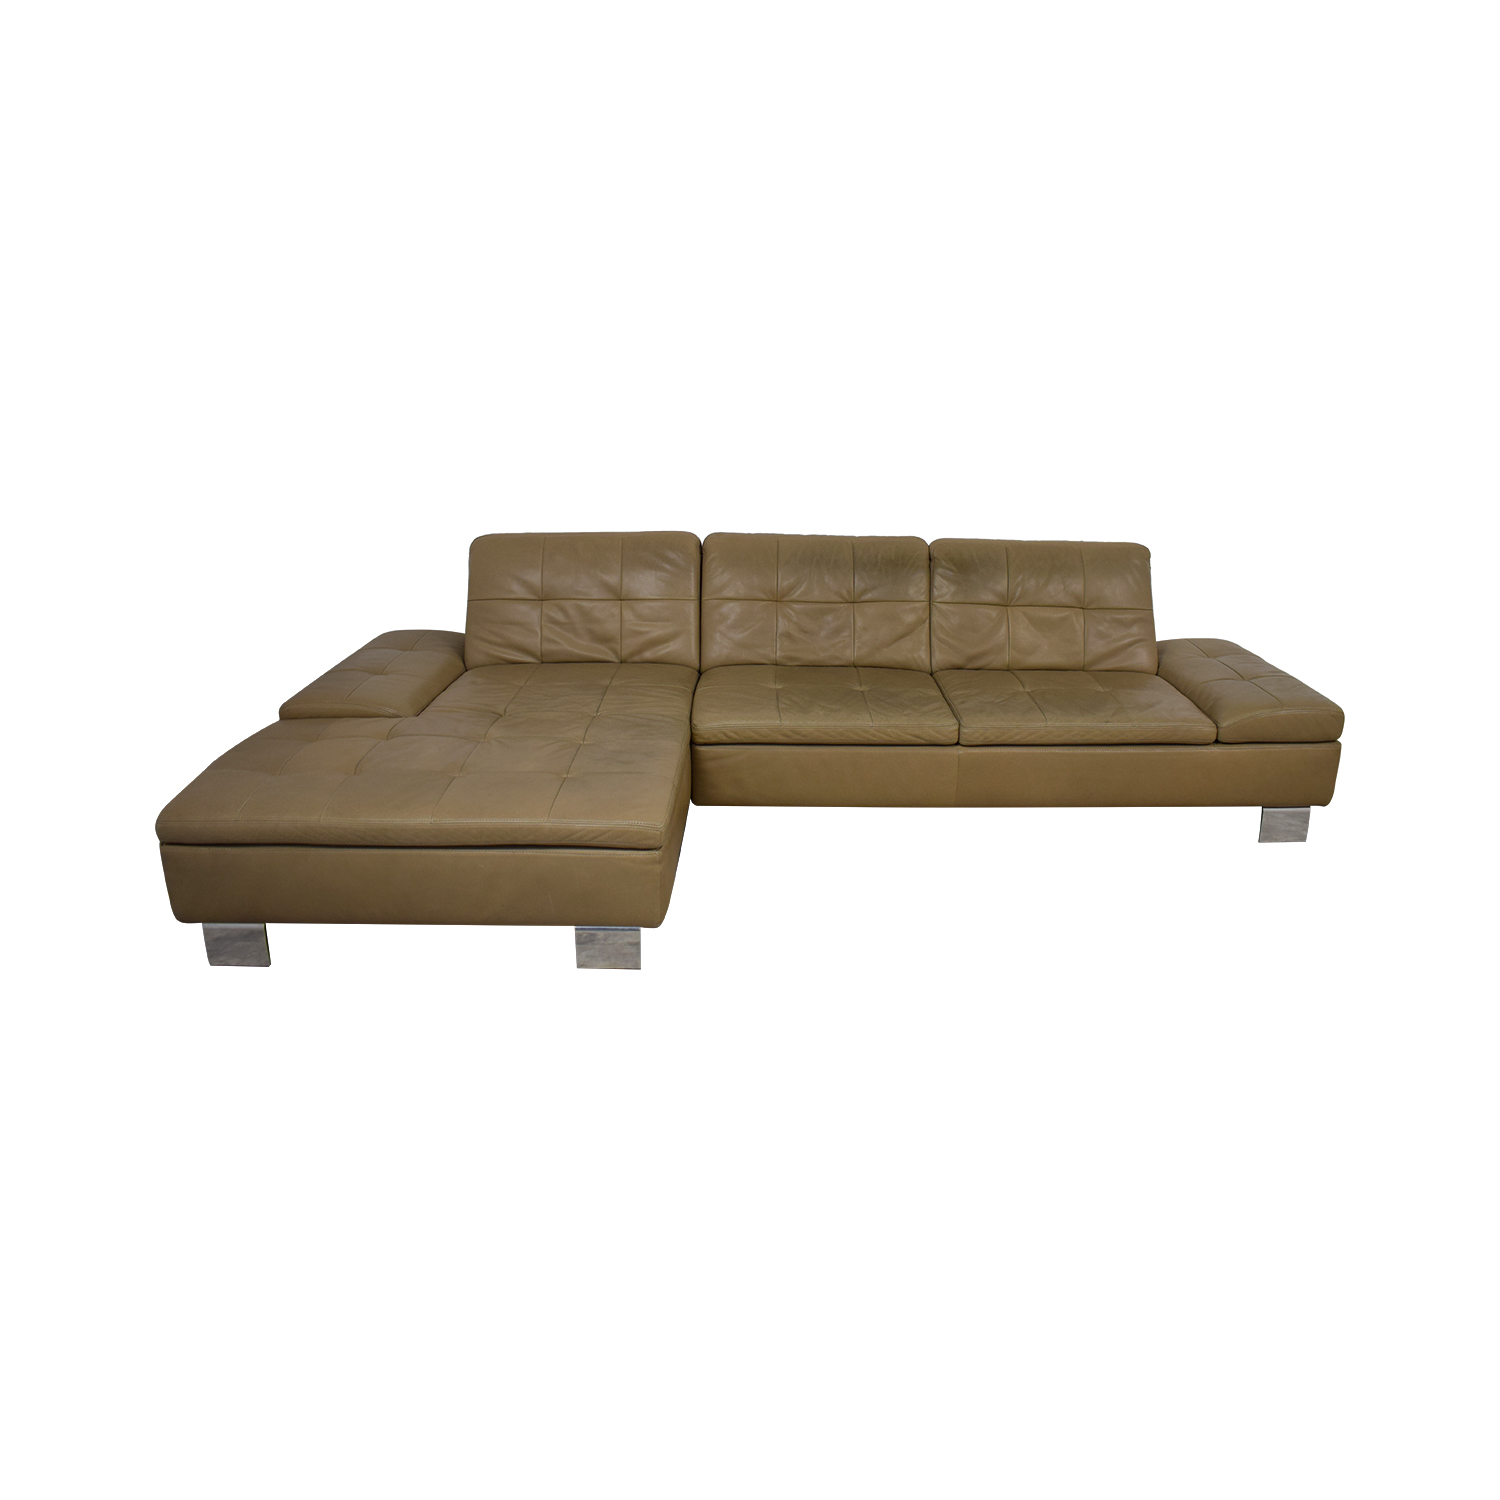 89% OFF - W. Schillig W. Schillig Contemporary Sectional Sofa in Natural  Leather / Sofas